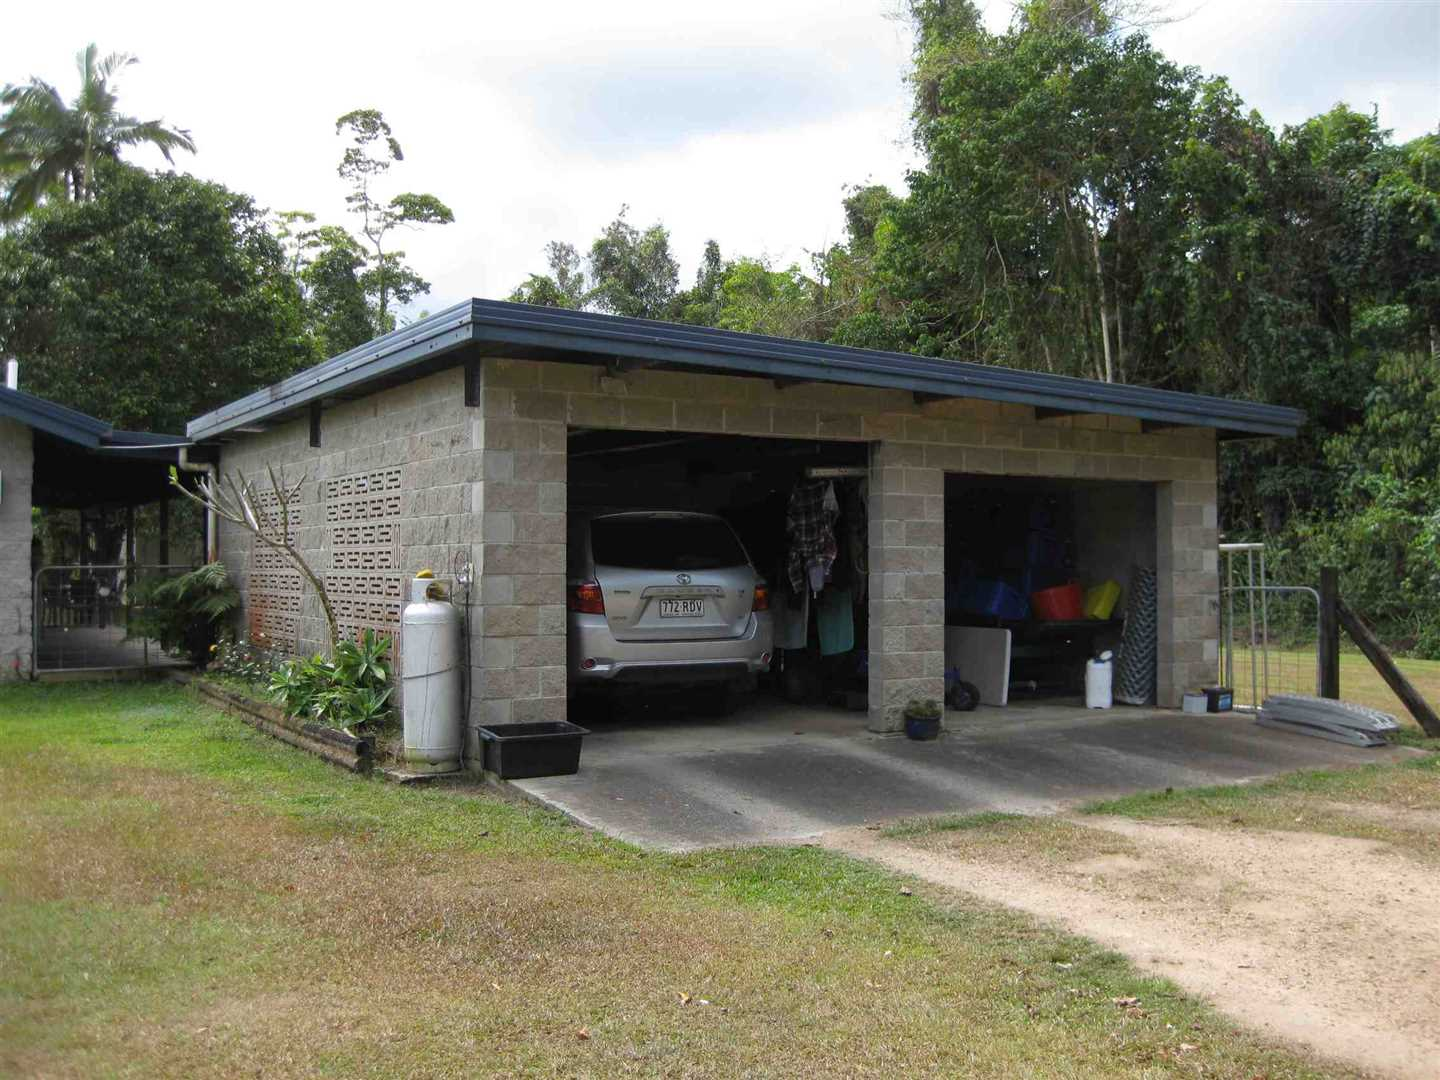 View of part of 2 bay shed or carport adjacent to the home